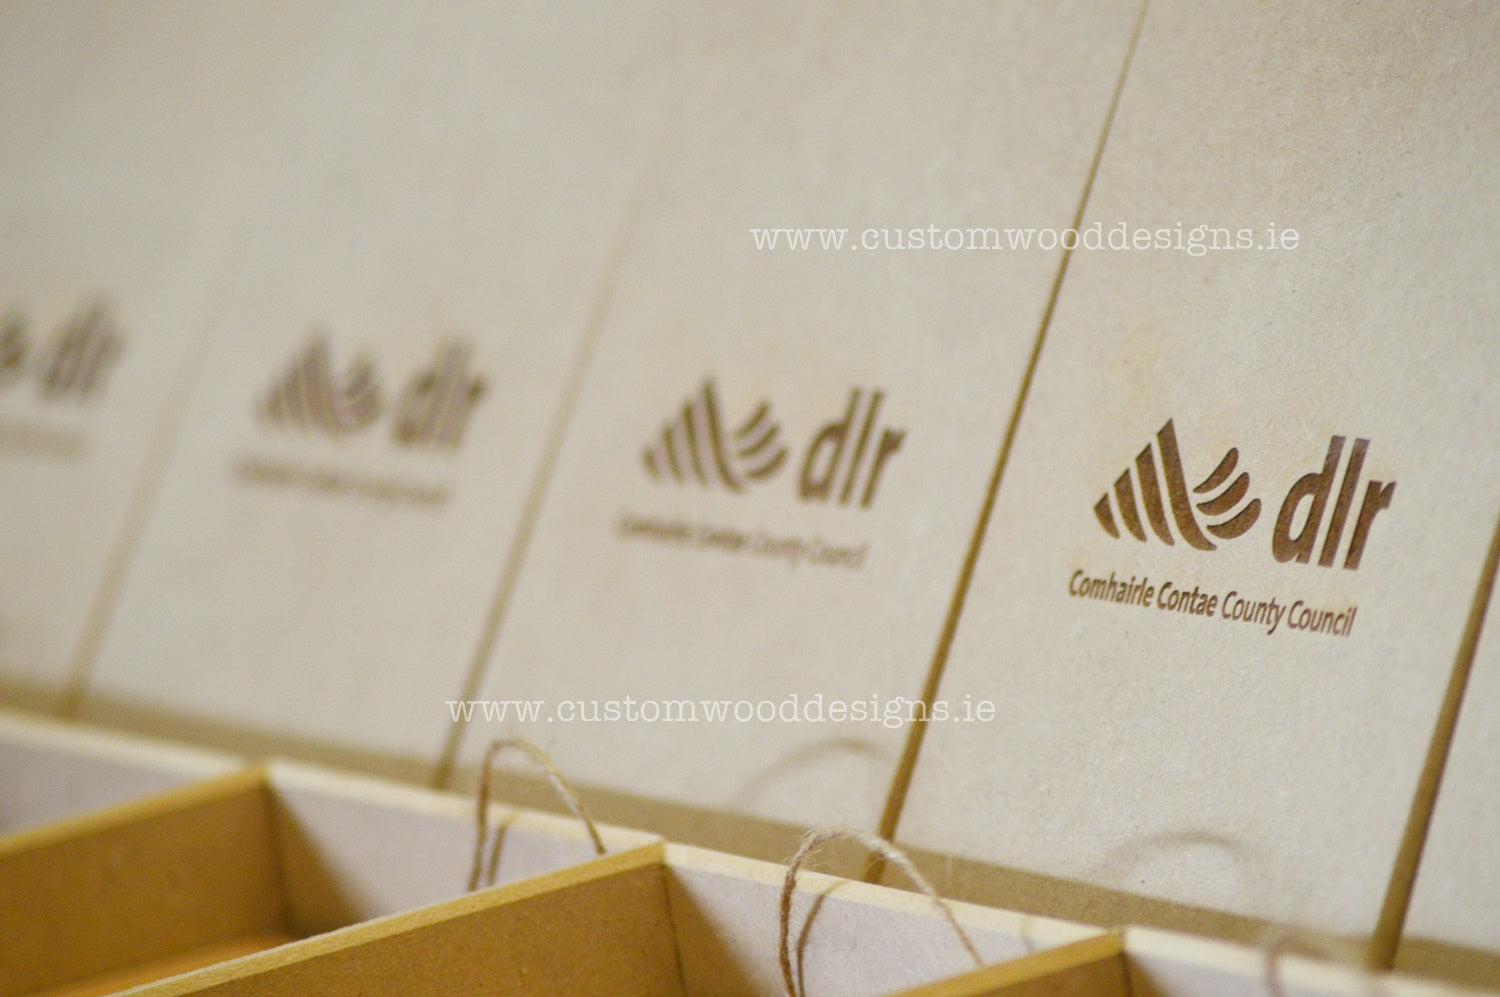 mdf boxes manufacturer mdf box maker dublin mdf box maker ireland box maker dublin box maker packaging maker wooden box maker speciality box maker Ireland custom wood designs Ireland sent worldwide beautiful mdf boxes custom wood designs mdf board box maker black mdf boxes maker insert Mdf box maker product drop box maker product activation mdf boxes product boxes maker manufacturer branded mdf boxes laser engraved mdf boxes laser engraved mdf boxes voloured mdf boxes dublin mdf boxes with logo mdf boxes with branding on custom made mdf boxes shipped worldwide exclusive boxes irealdn high end boxes gift mdf boxes present mdf boxes